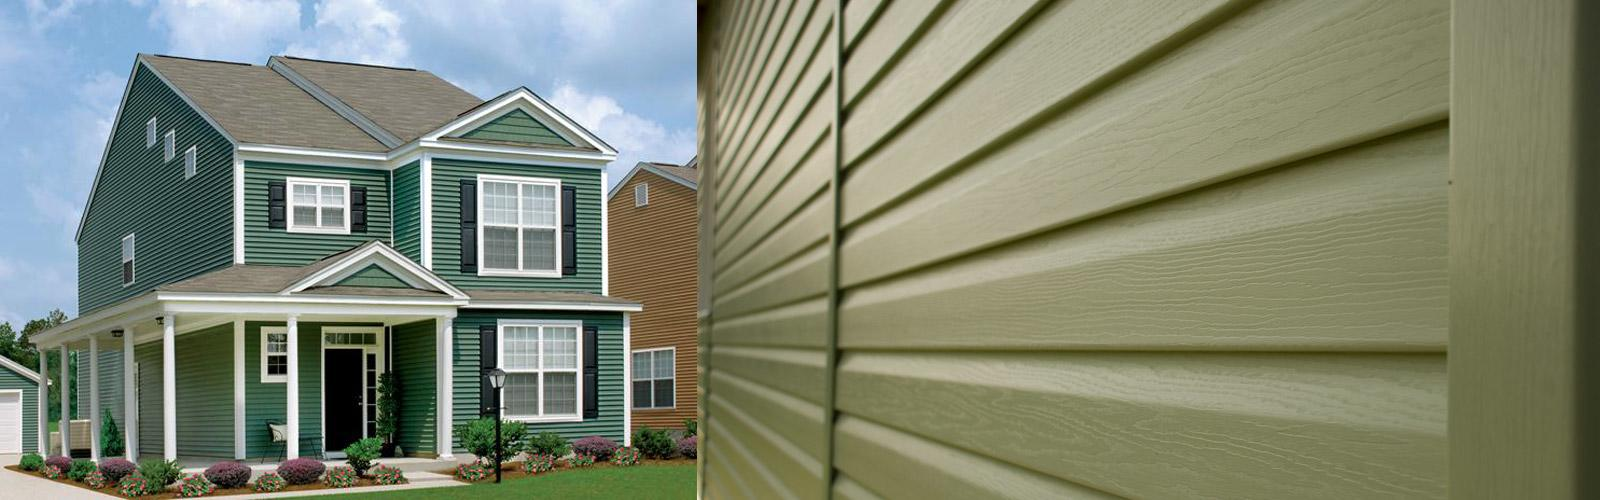 Vinyl Siding Clayton, Installation, repairs, James Hardie, masonite replacement services